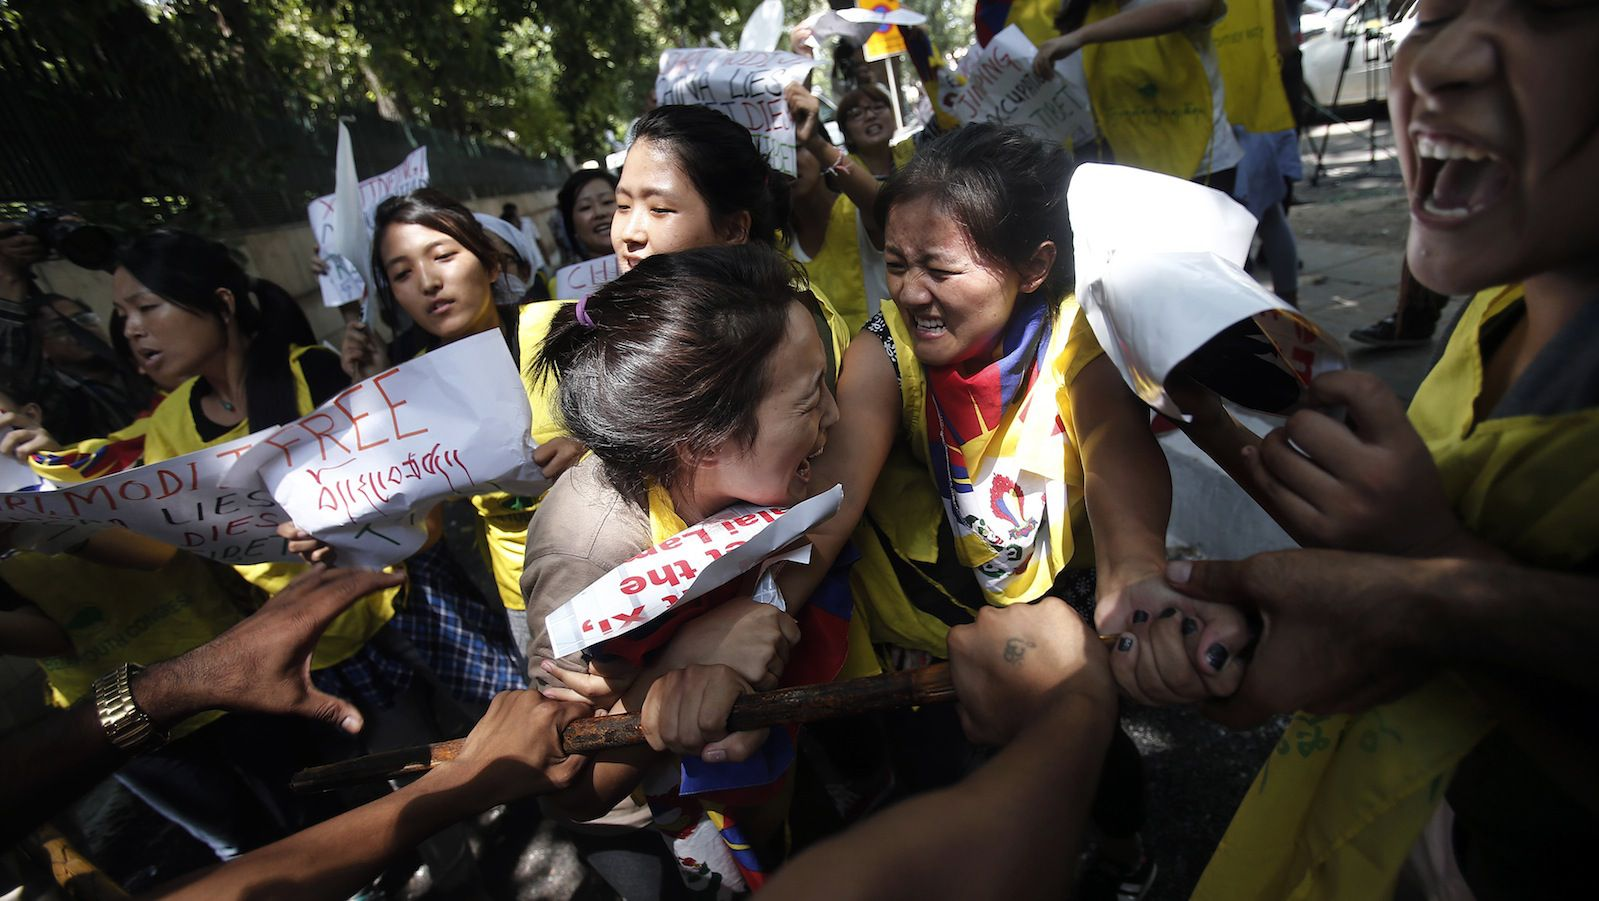 Tibetan exiles shout slogans as they scuffle with police during a protest outside the venue of a meeting between Chinese President Xi Jinping and Indian Prime Minister Narendra Modi in New Delhi September 18, 2014. Groups of Tibetan activists held noisy protests outside the hotel where Xi was staying in New Delhi, and at the stately Hyderabad House where he sat down for formal talks with Modi. REUTERS/Adnan Abidi (INDIA - Tags: CIVIL UNREST POLITICS) - RTR46PVW